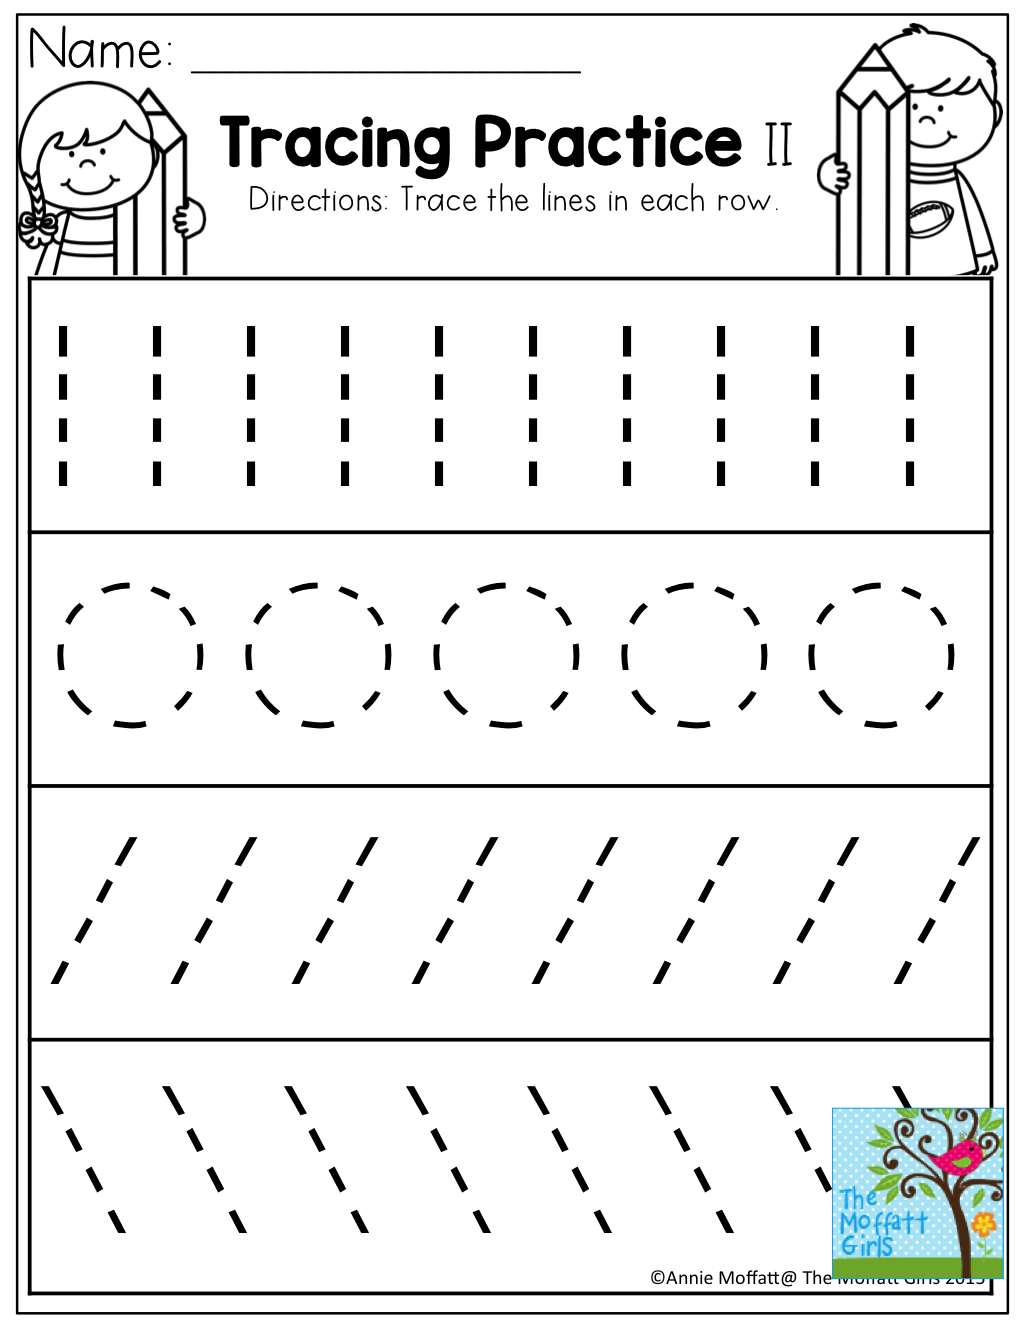 Tracing Practice! Tons Of Printable For Pre-K, Kindergarten within Name Tracing Practice With Red And Blue Lines